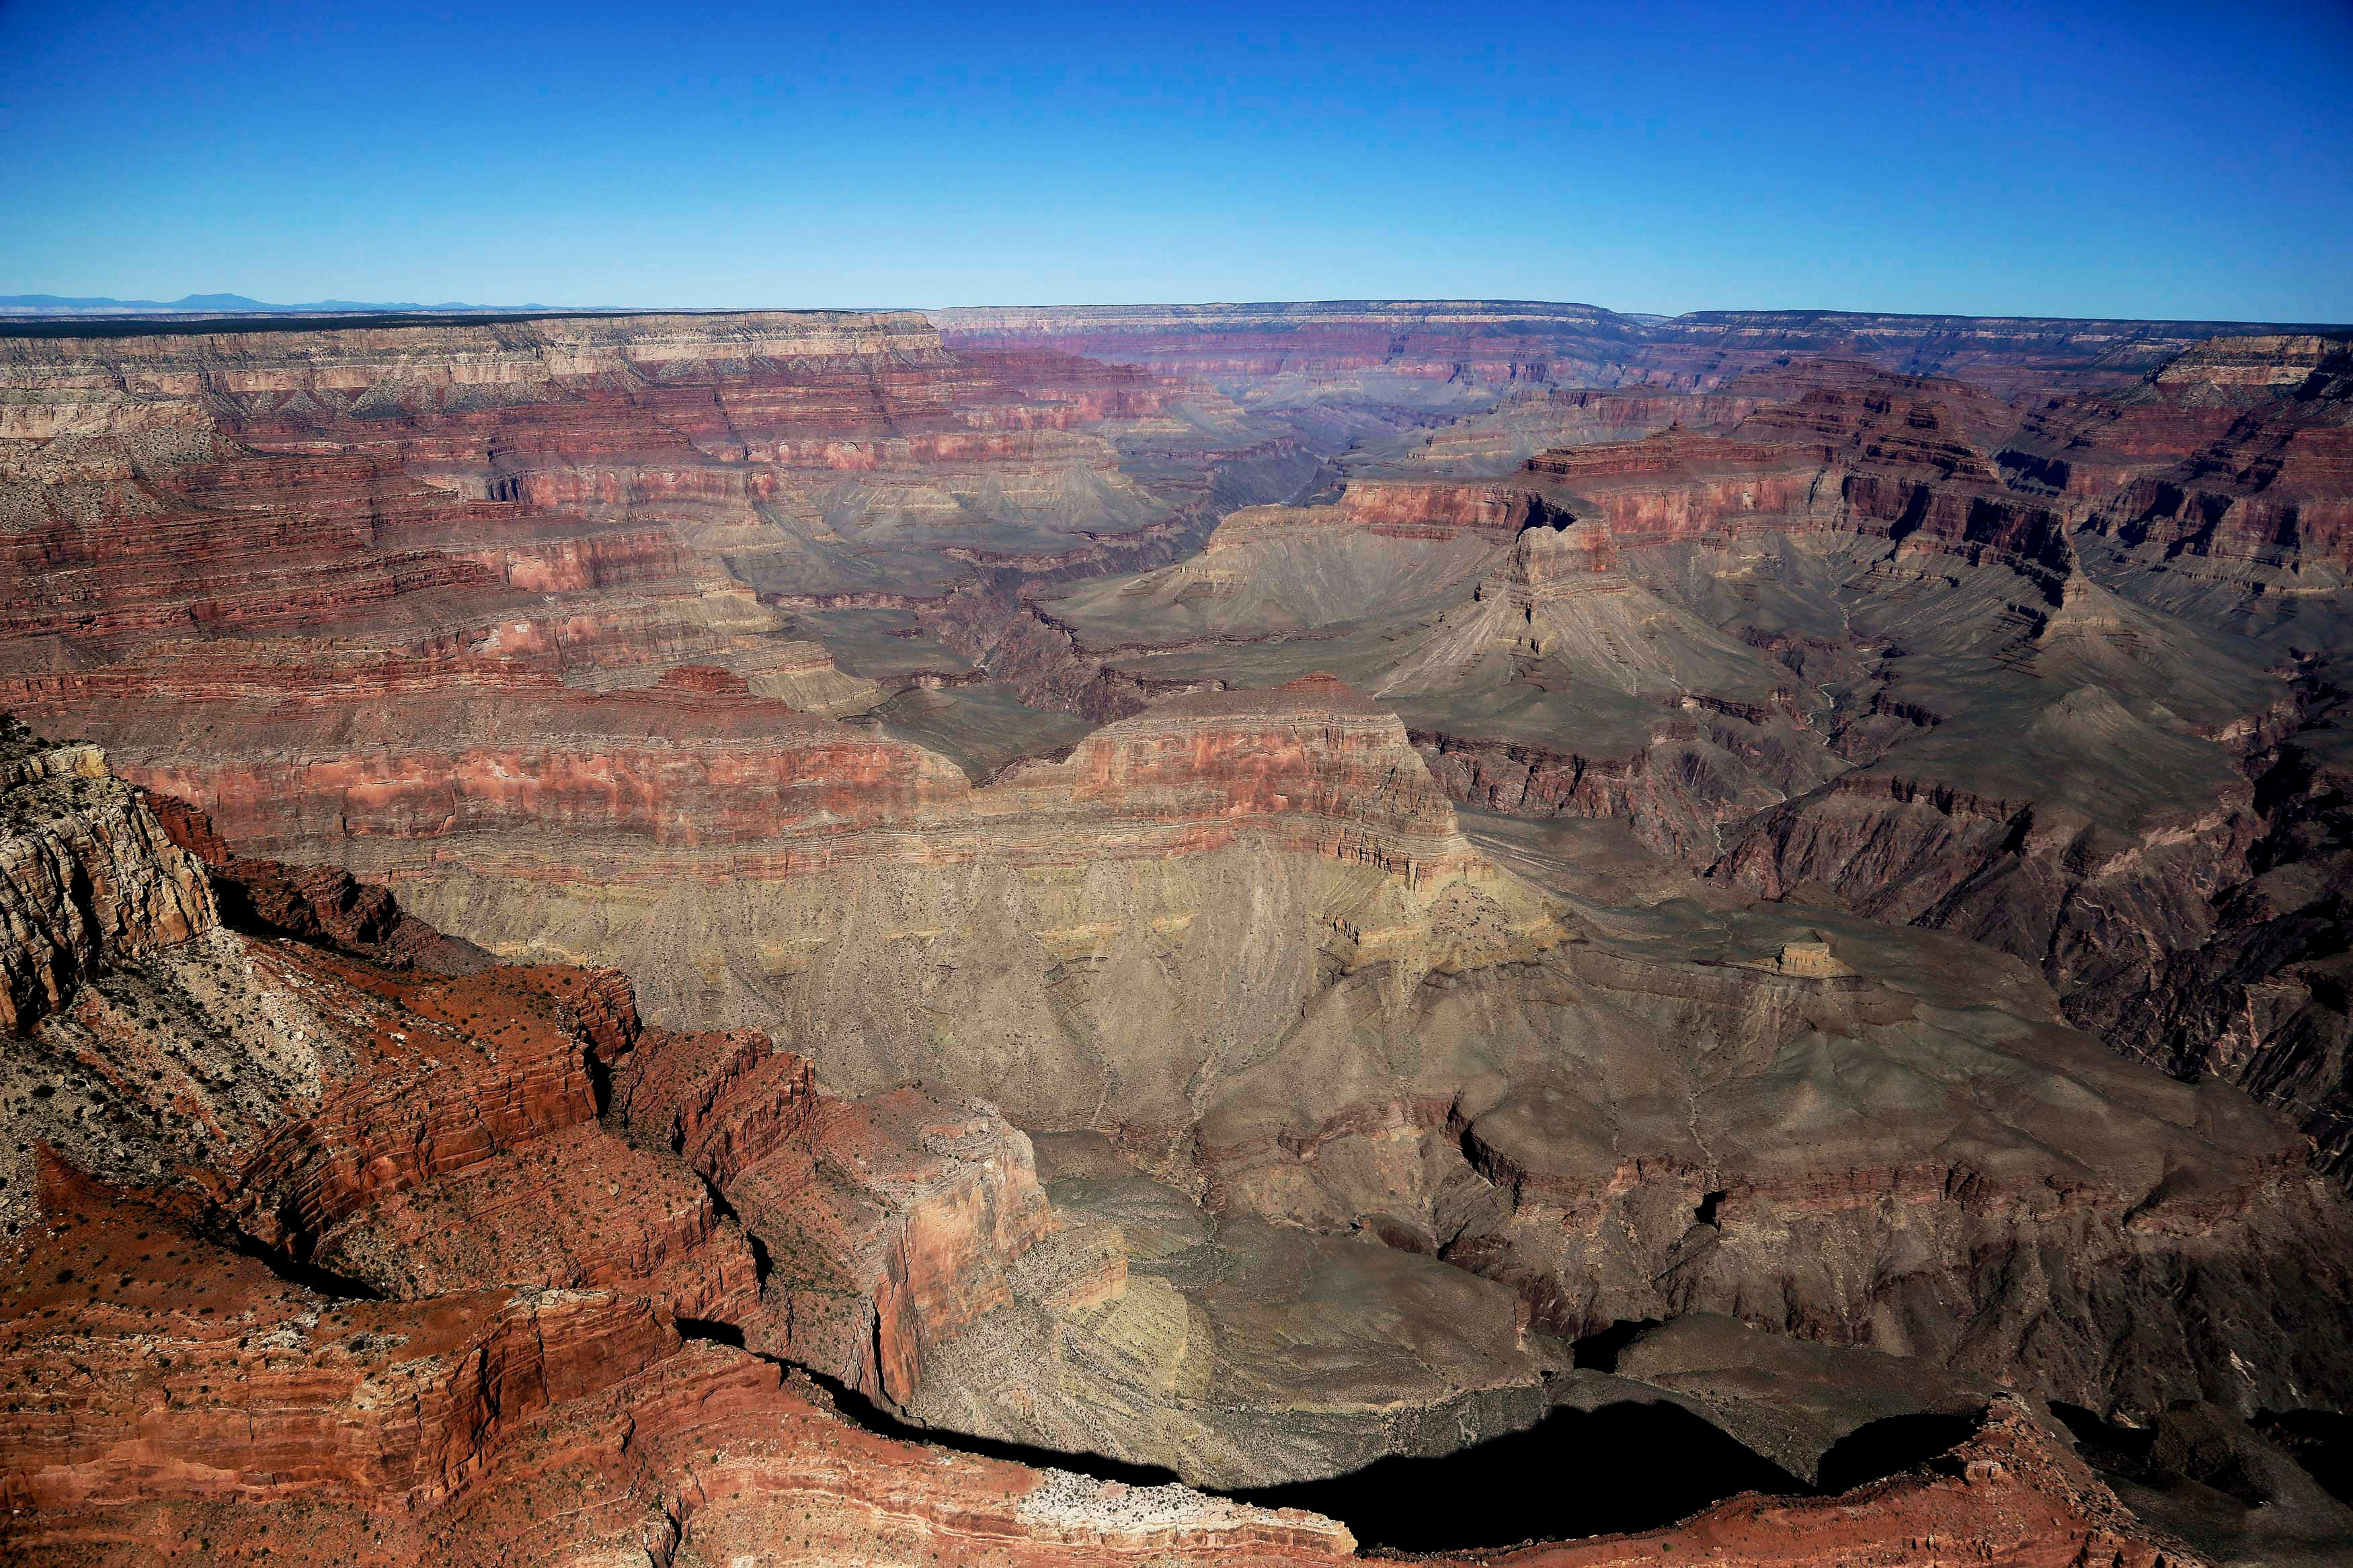 You can tour National Parks across the U.S. through Google Earth